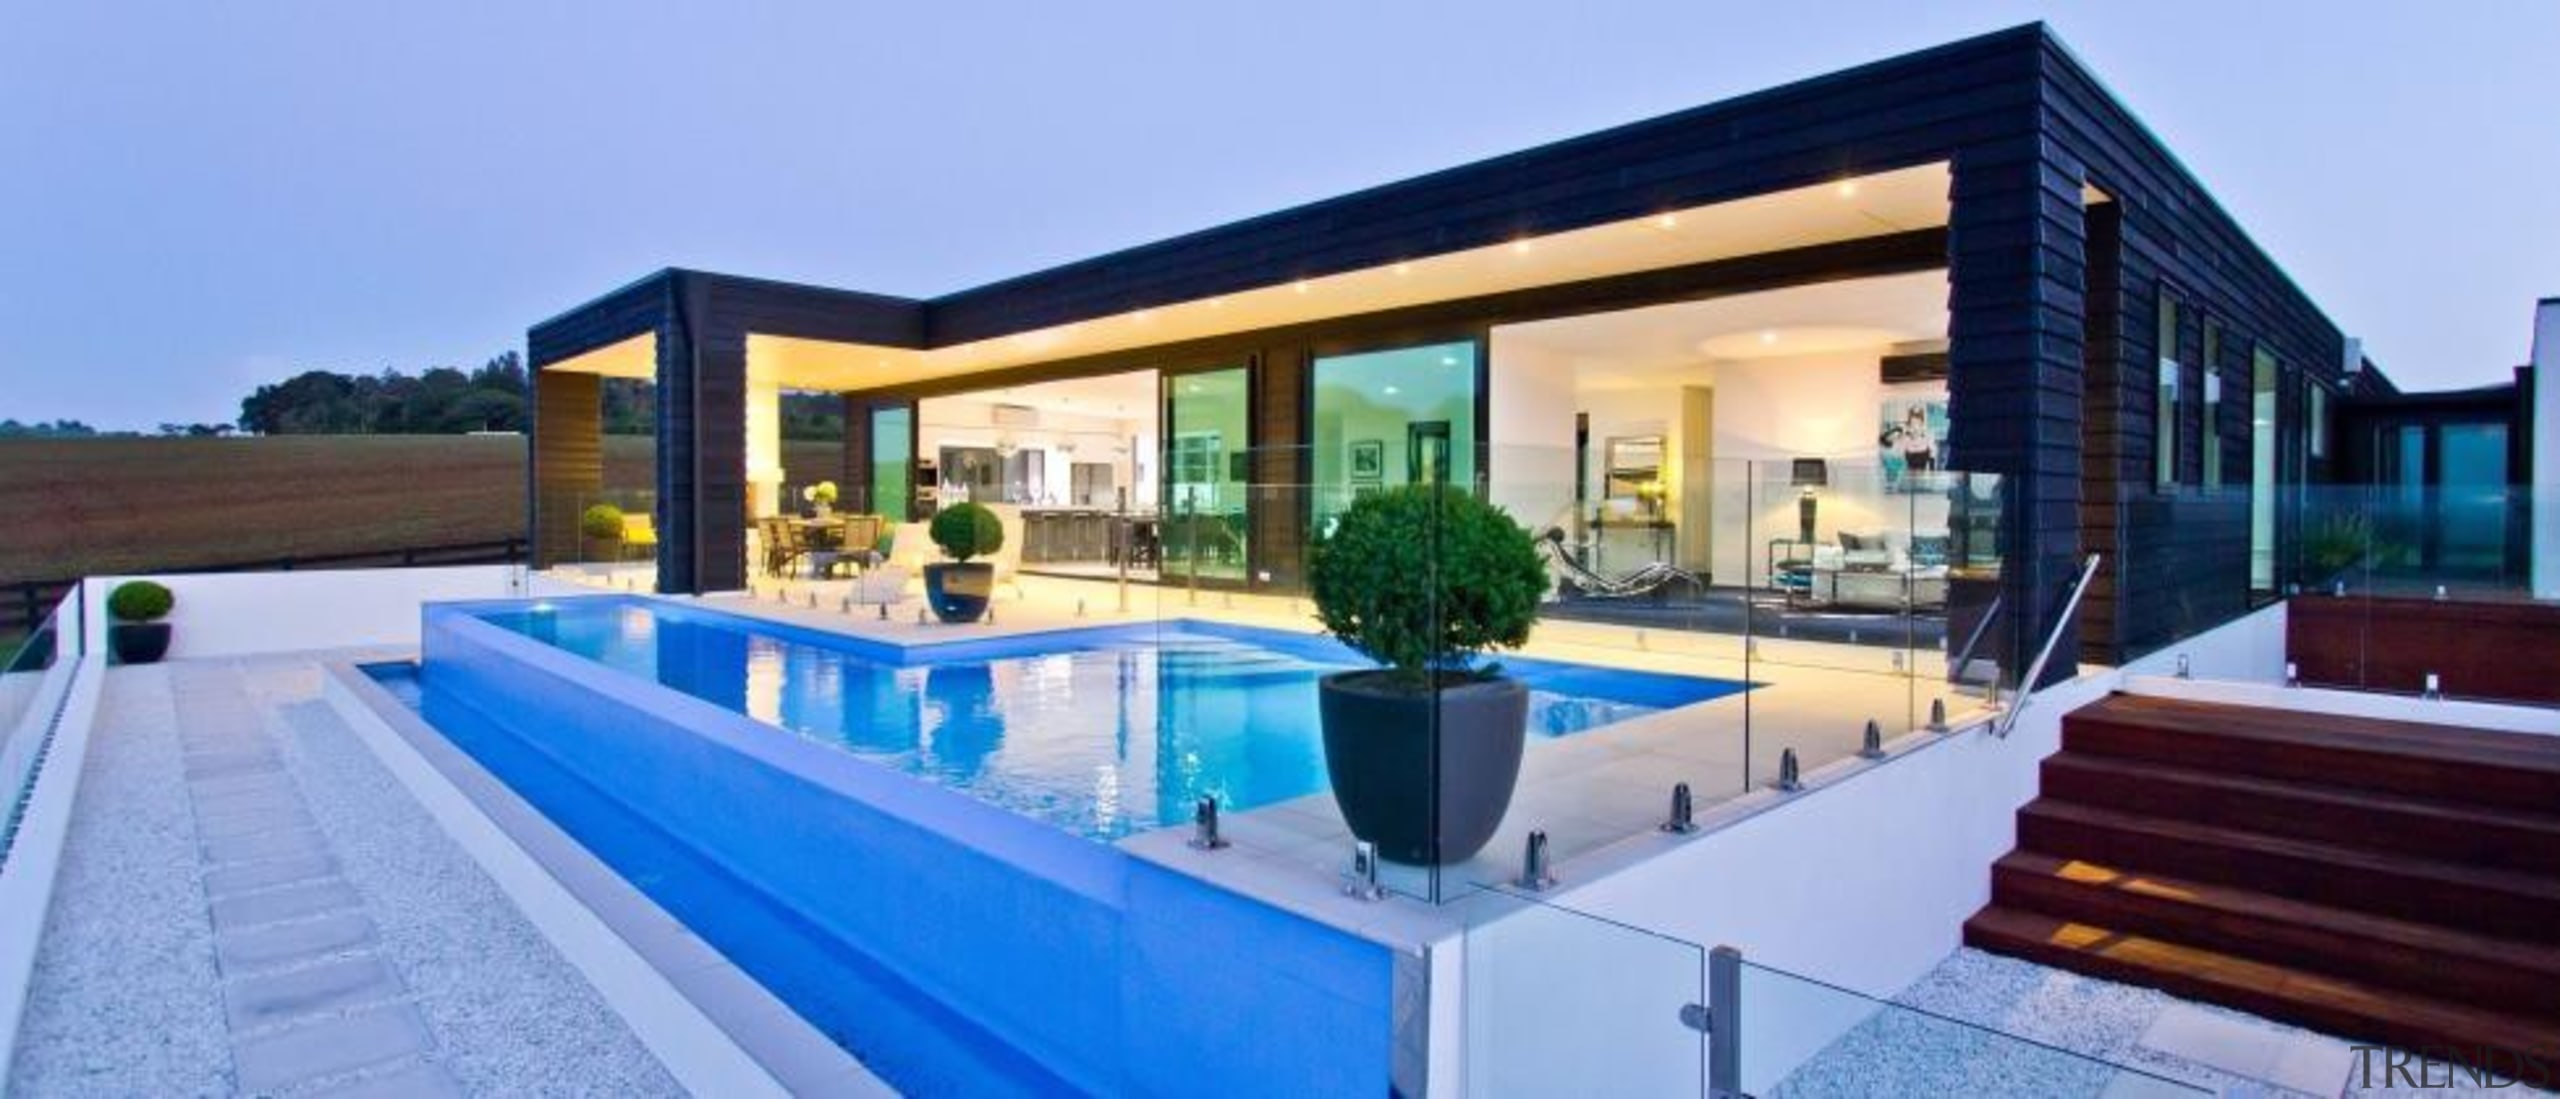 A contemporary house design by Design House Architecture architecture, estate, home, house, leisure, property, real estate, resort, swimming pool, villa, teal